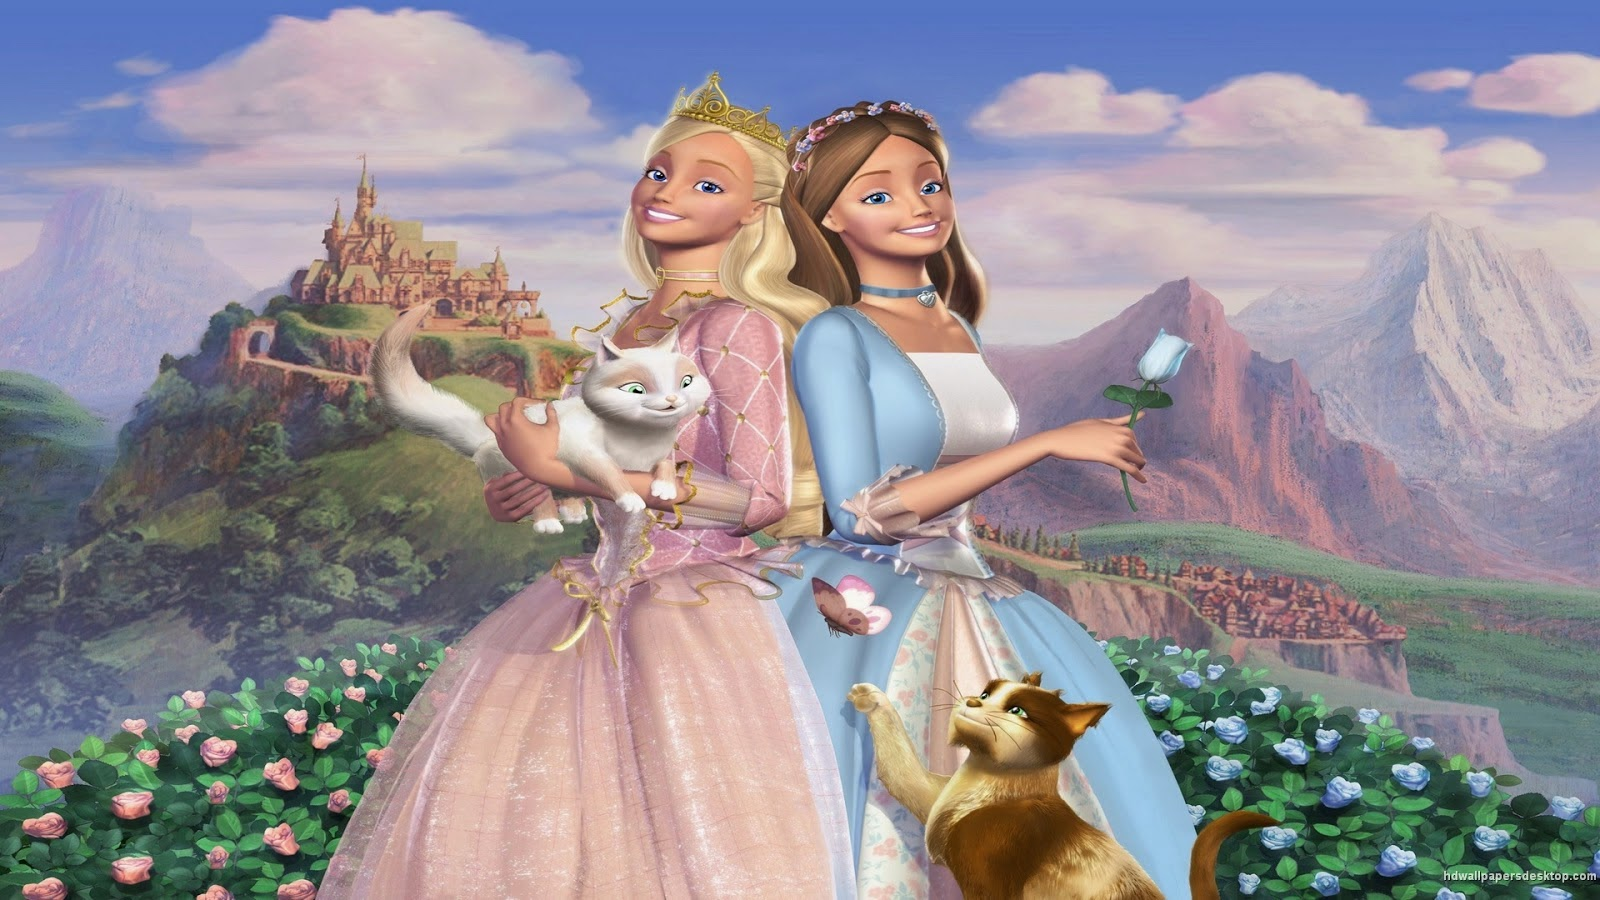 Free barbie movie wallpapers download barbie as the princess and barbie as the princess and the pauper 2004 wallpapers free download voltagebd Image collections